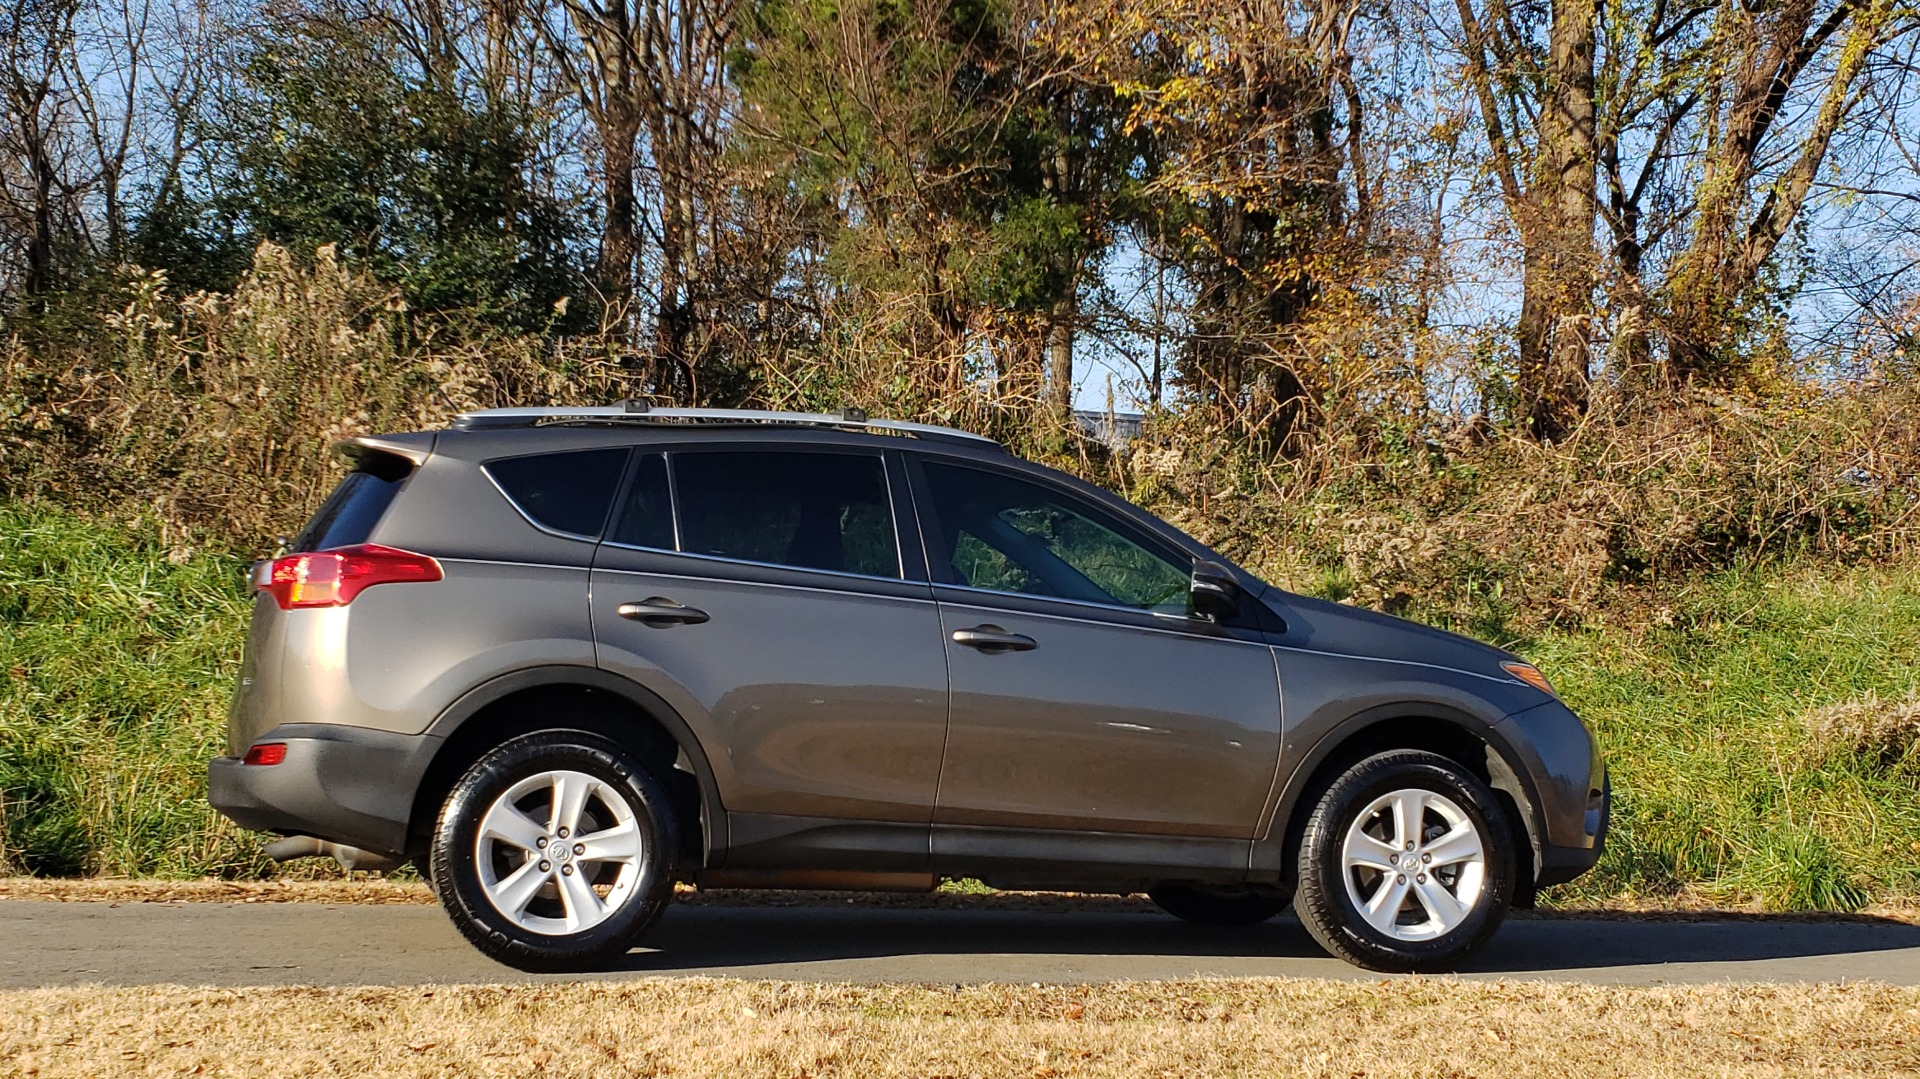 Used 2014 Toyota RAV4 XLE / FWD / 2.5L 4-CYL / 6-SPD AUTO / 17IN ALLOY / REARVIEW for sale $13,695 at Formula Imports in Charlotte NC 28227 7